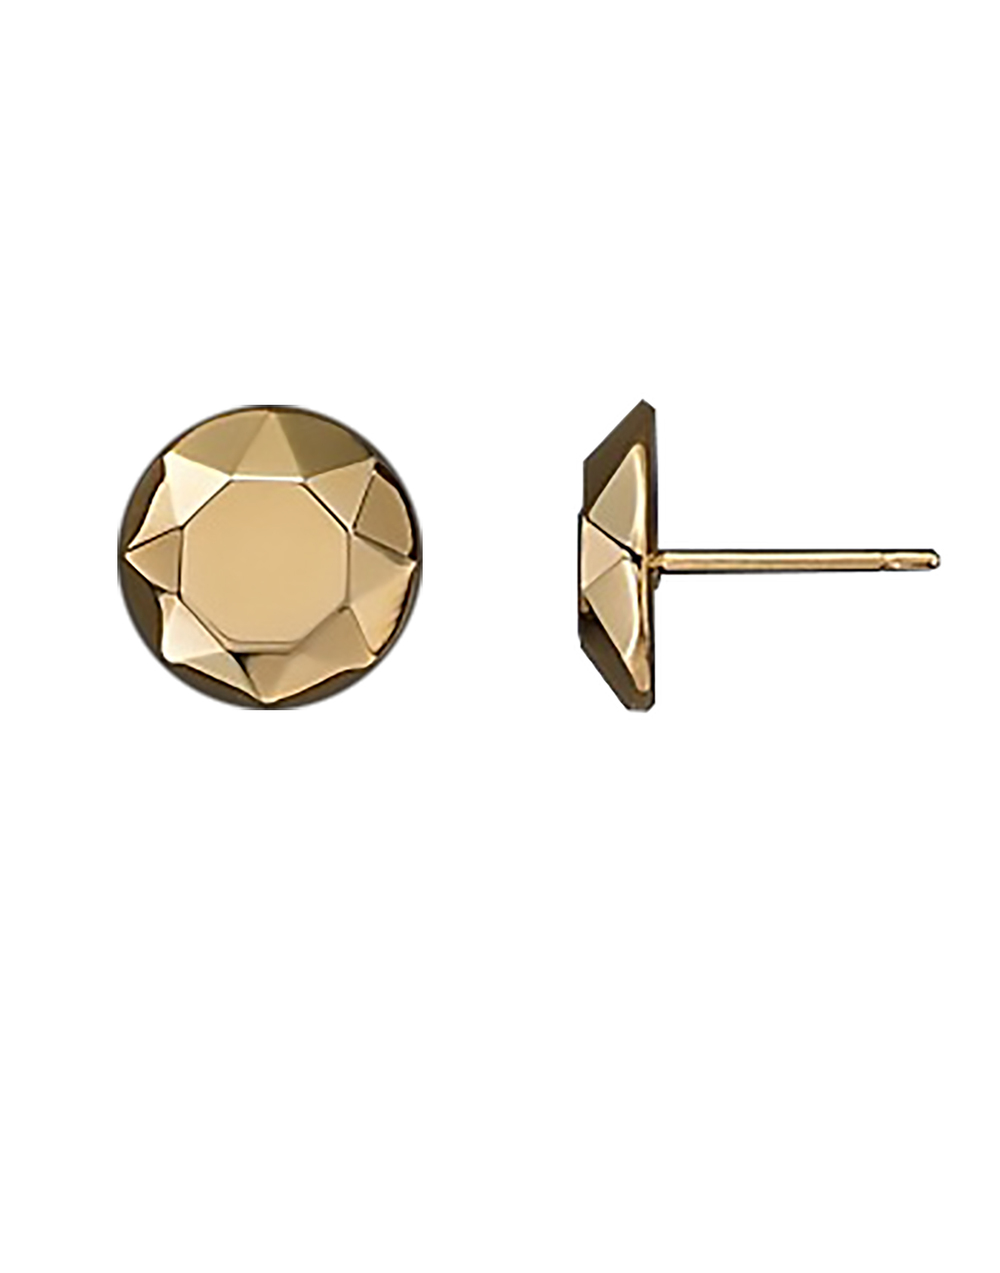 bloomingdales 14k yellow gold faceted dome earrings studs 1500.jpg